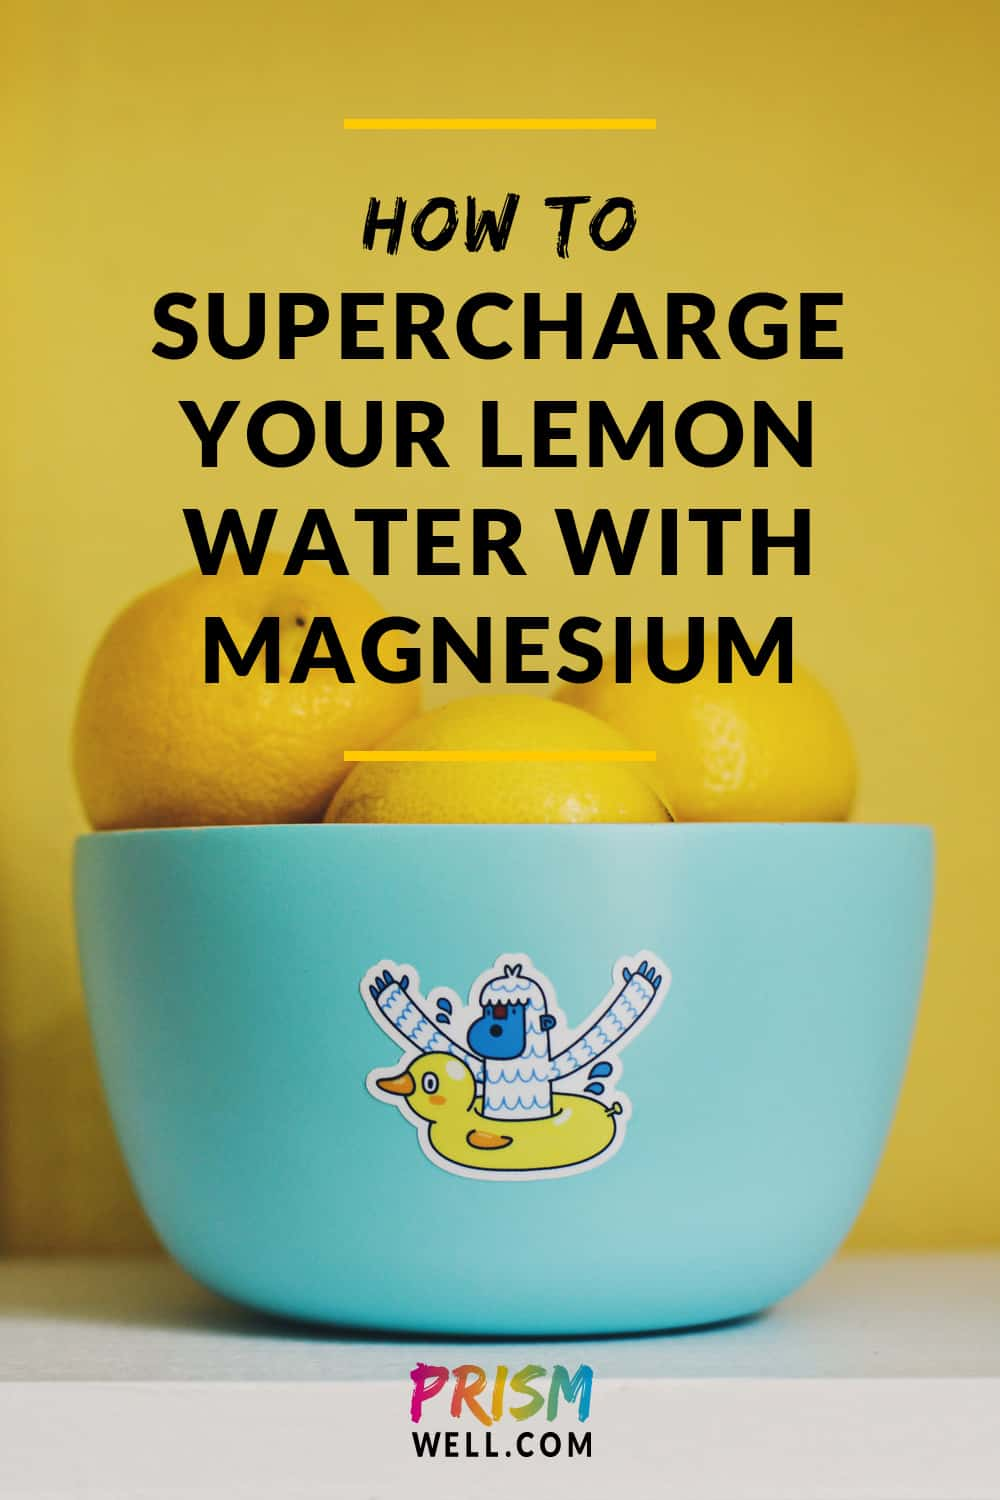 Out of all the supplements I take, this lemon water potion provides the most bang for my buck. It'll make you feel so much better, and it tastes great!